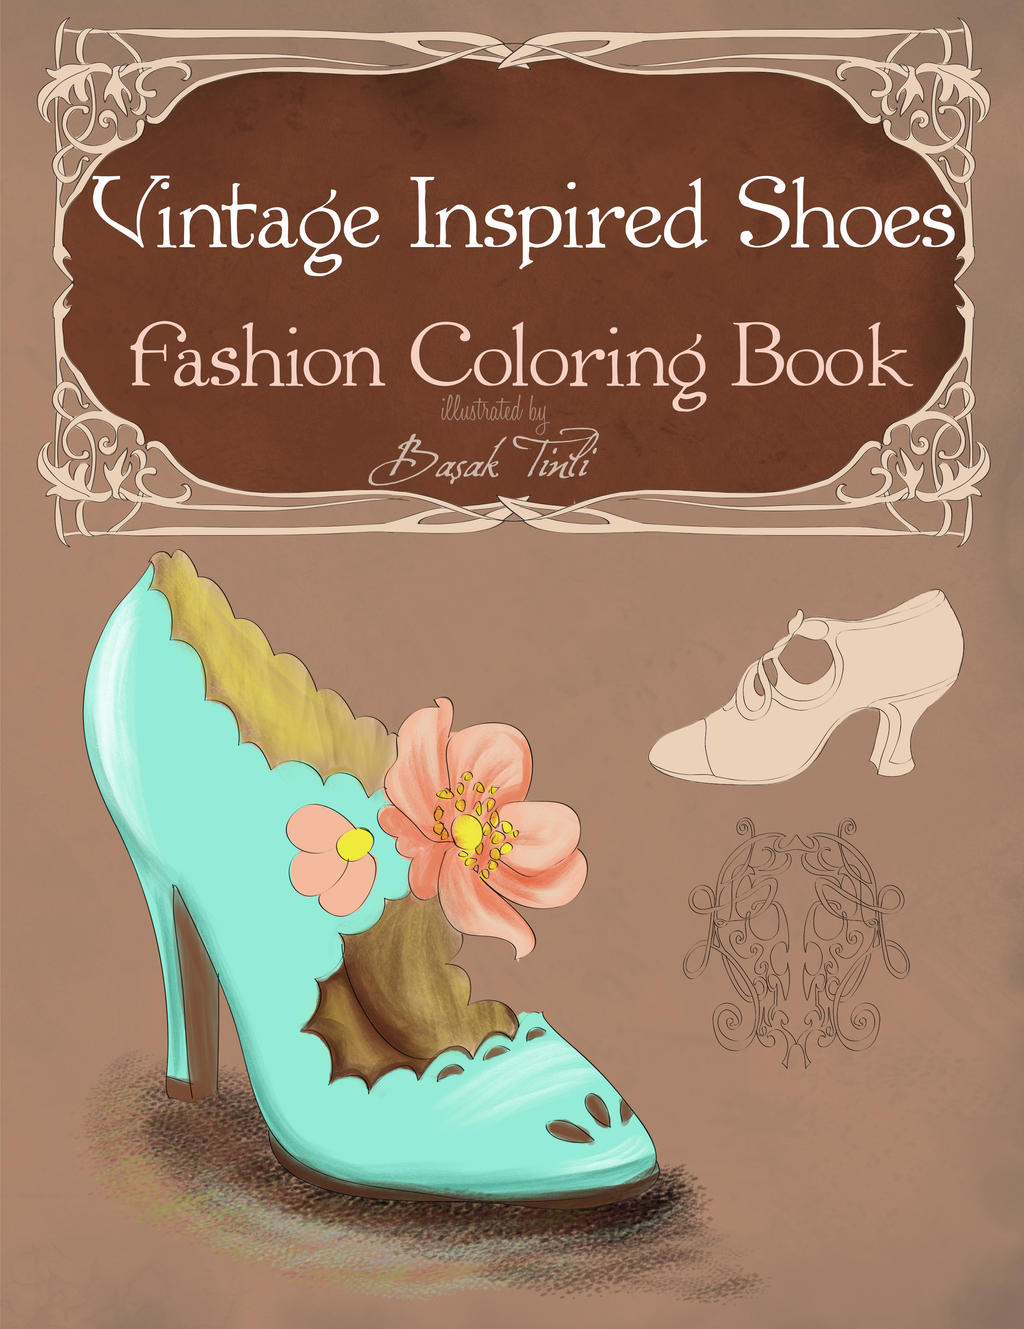 Vintage Inspired Shoes Fashion Coloring Book Cover By BasakTinli